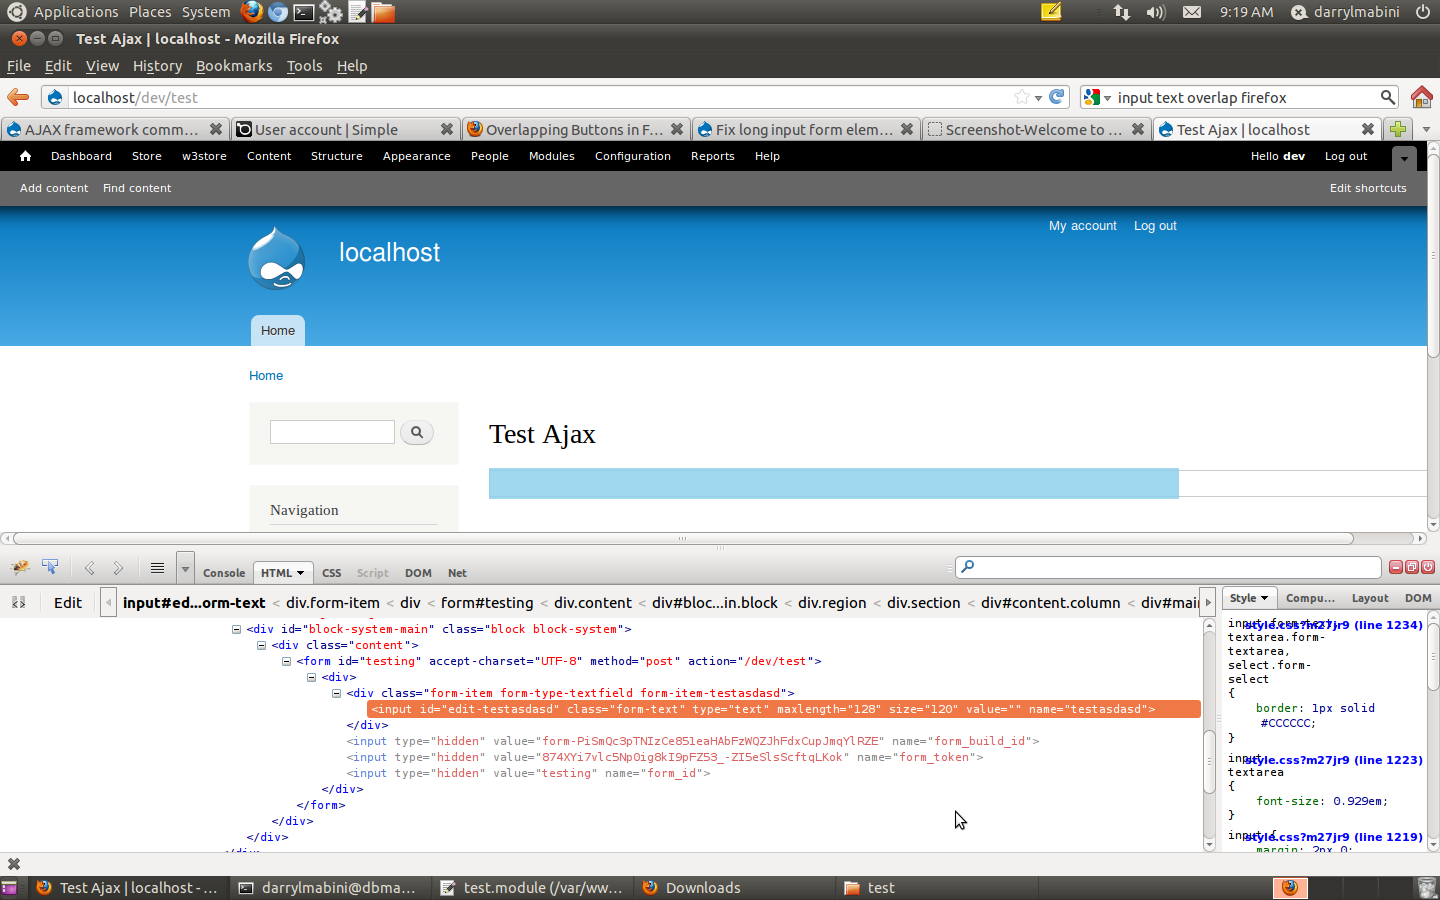 Fix long input form elements with Firefox on Linux (3 6 8 as shipped